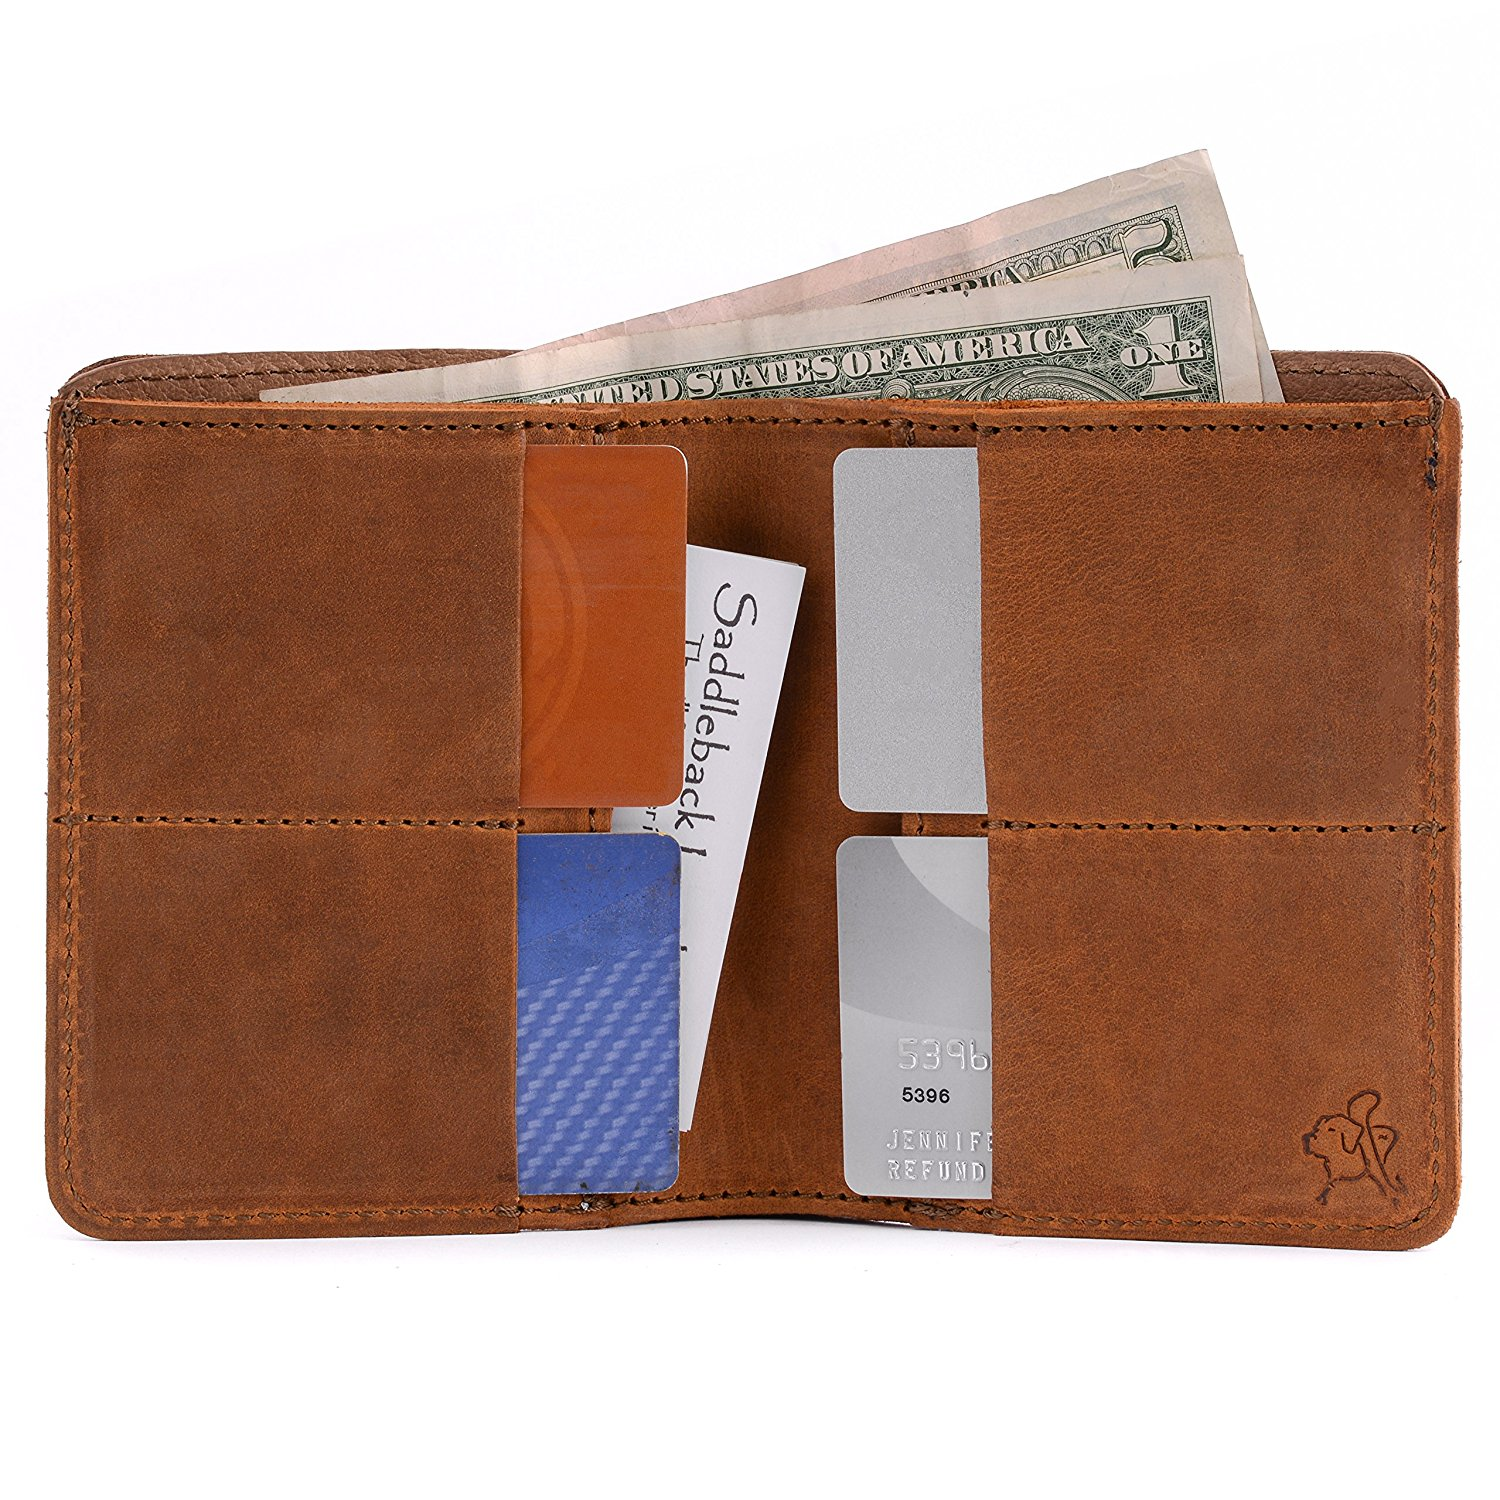 e503b77149657 Get Quotations · Saddleback Leather Large Bifold Wallet - RFID-Shielded 100%  Full Grain Big Leather Wallet